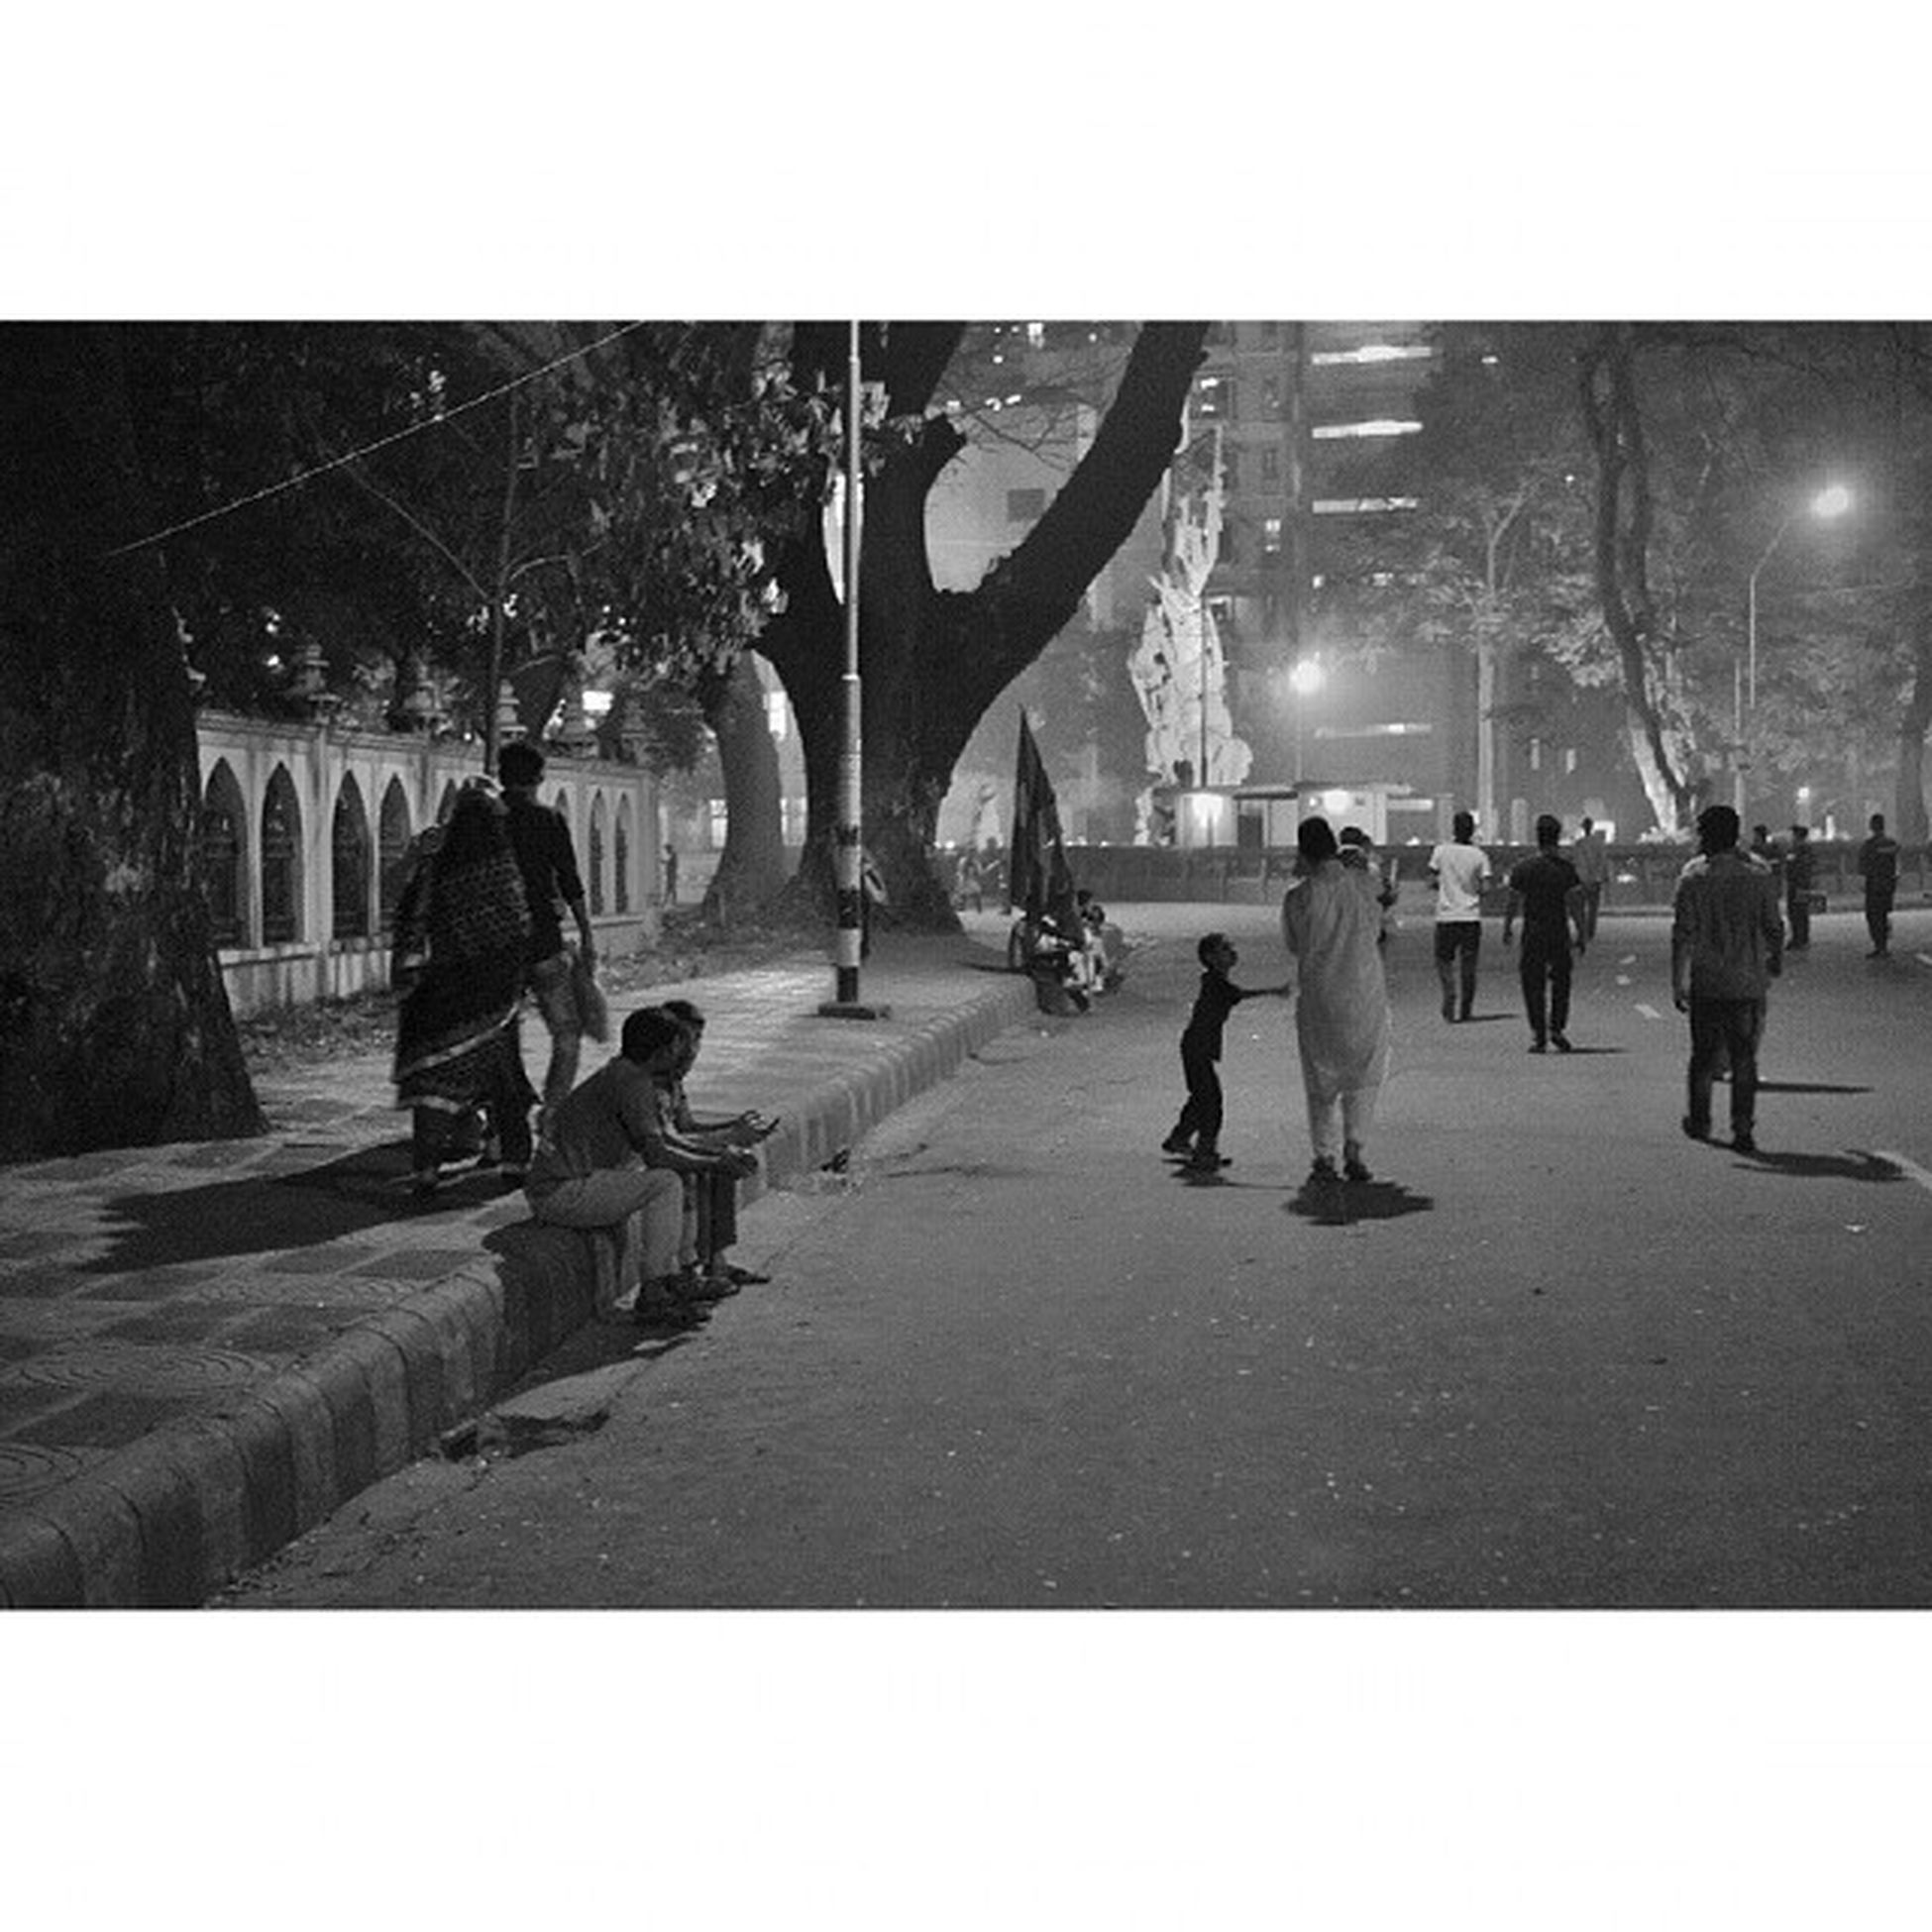 A photo from last night. People started to gather as midnight approached. Dailydiary Instadaily Dhaka Internationalmotherlanguageday 21stFebruary Du